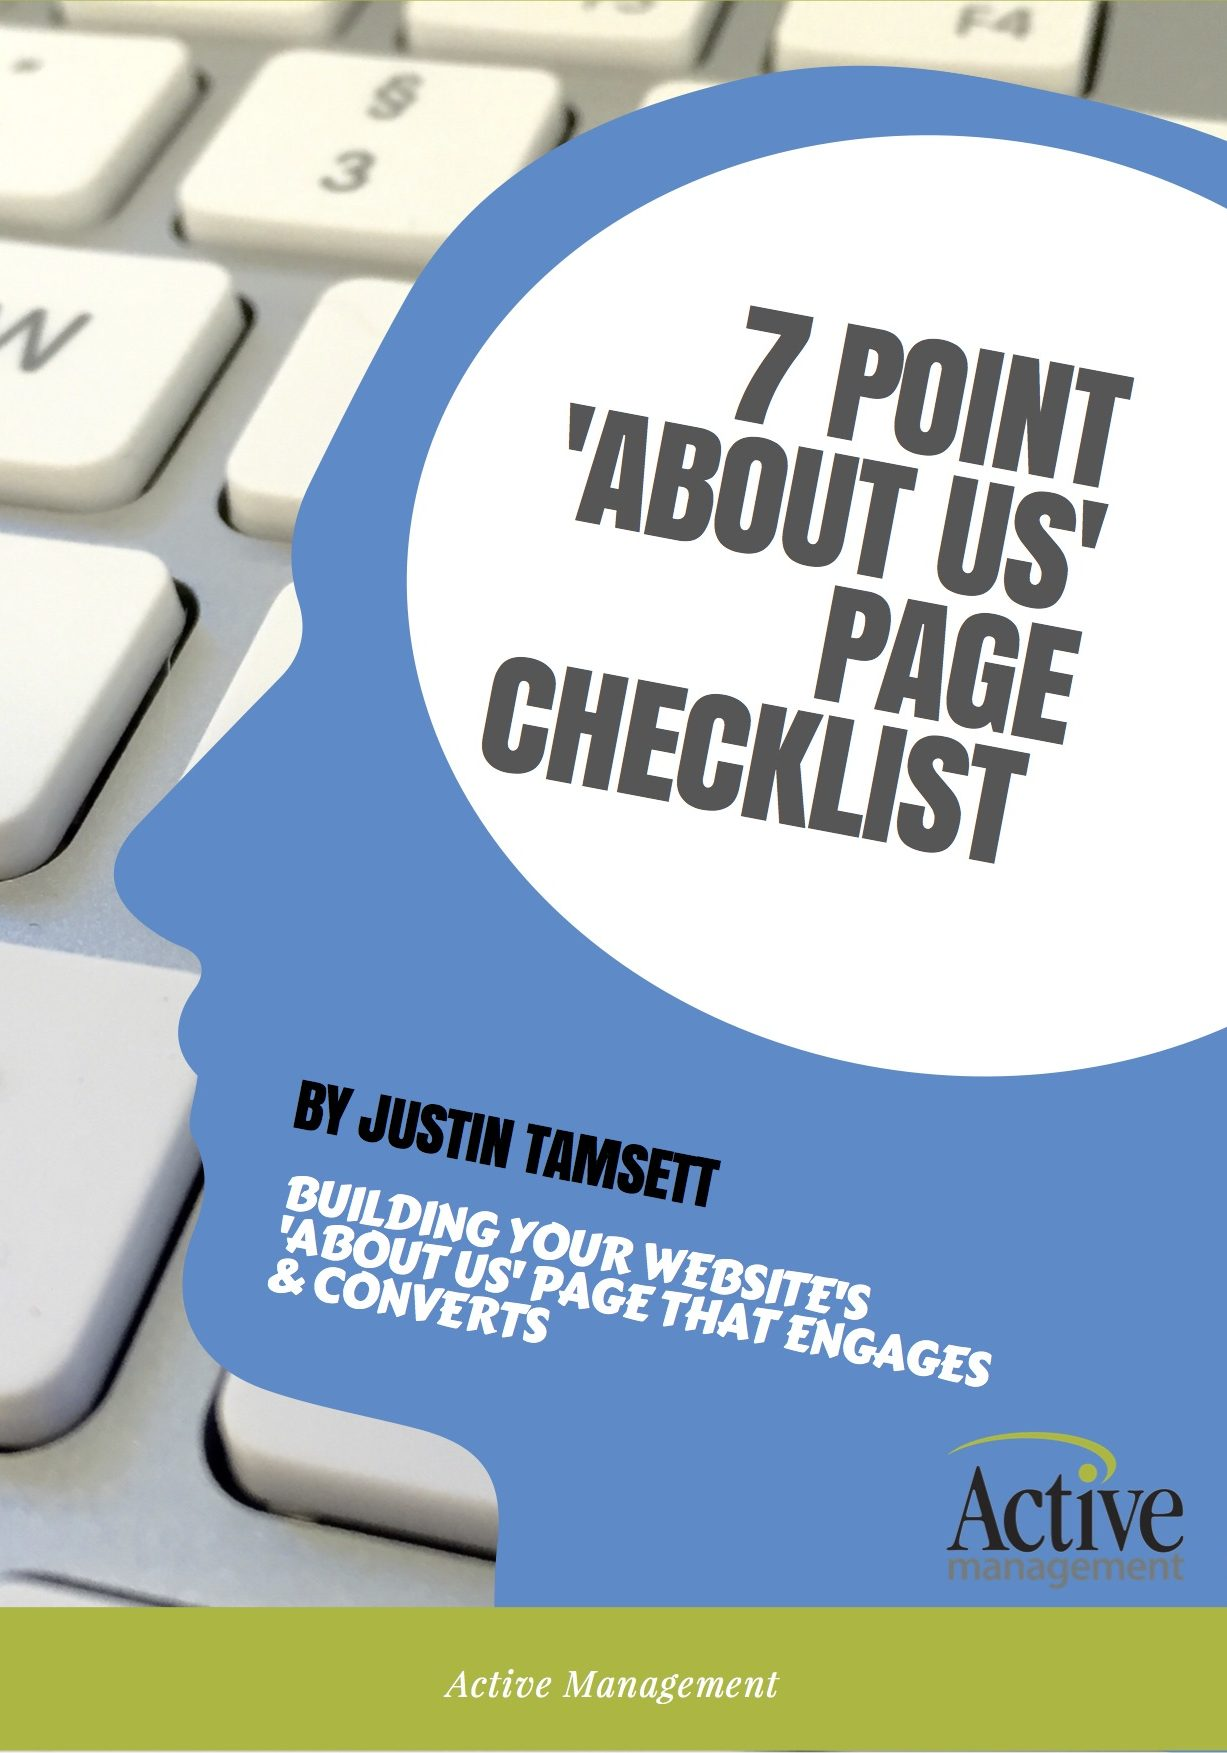 7 Point About Us Page Checklist